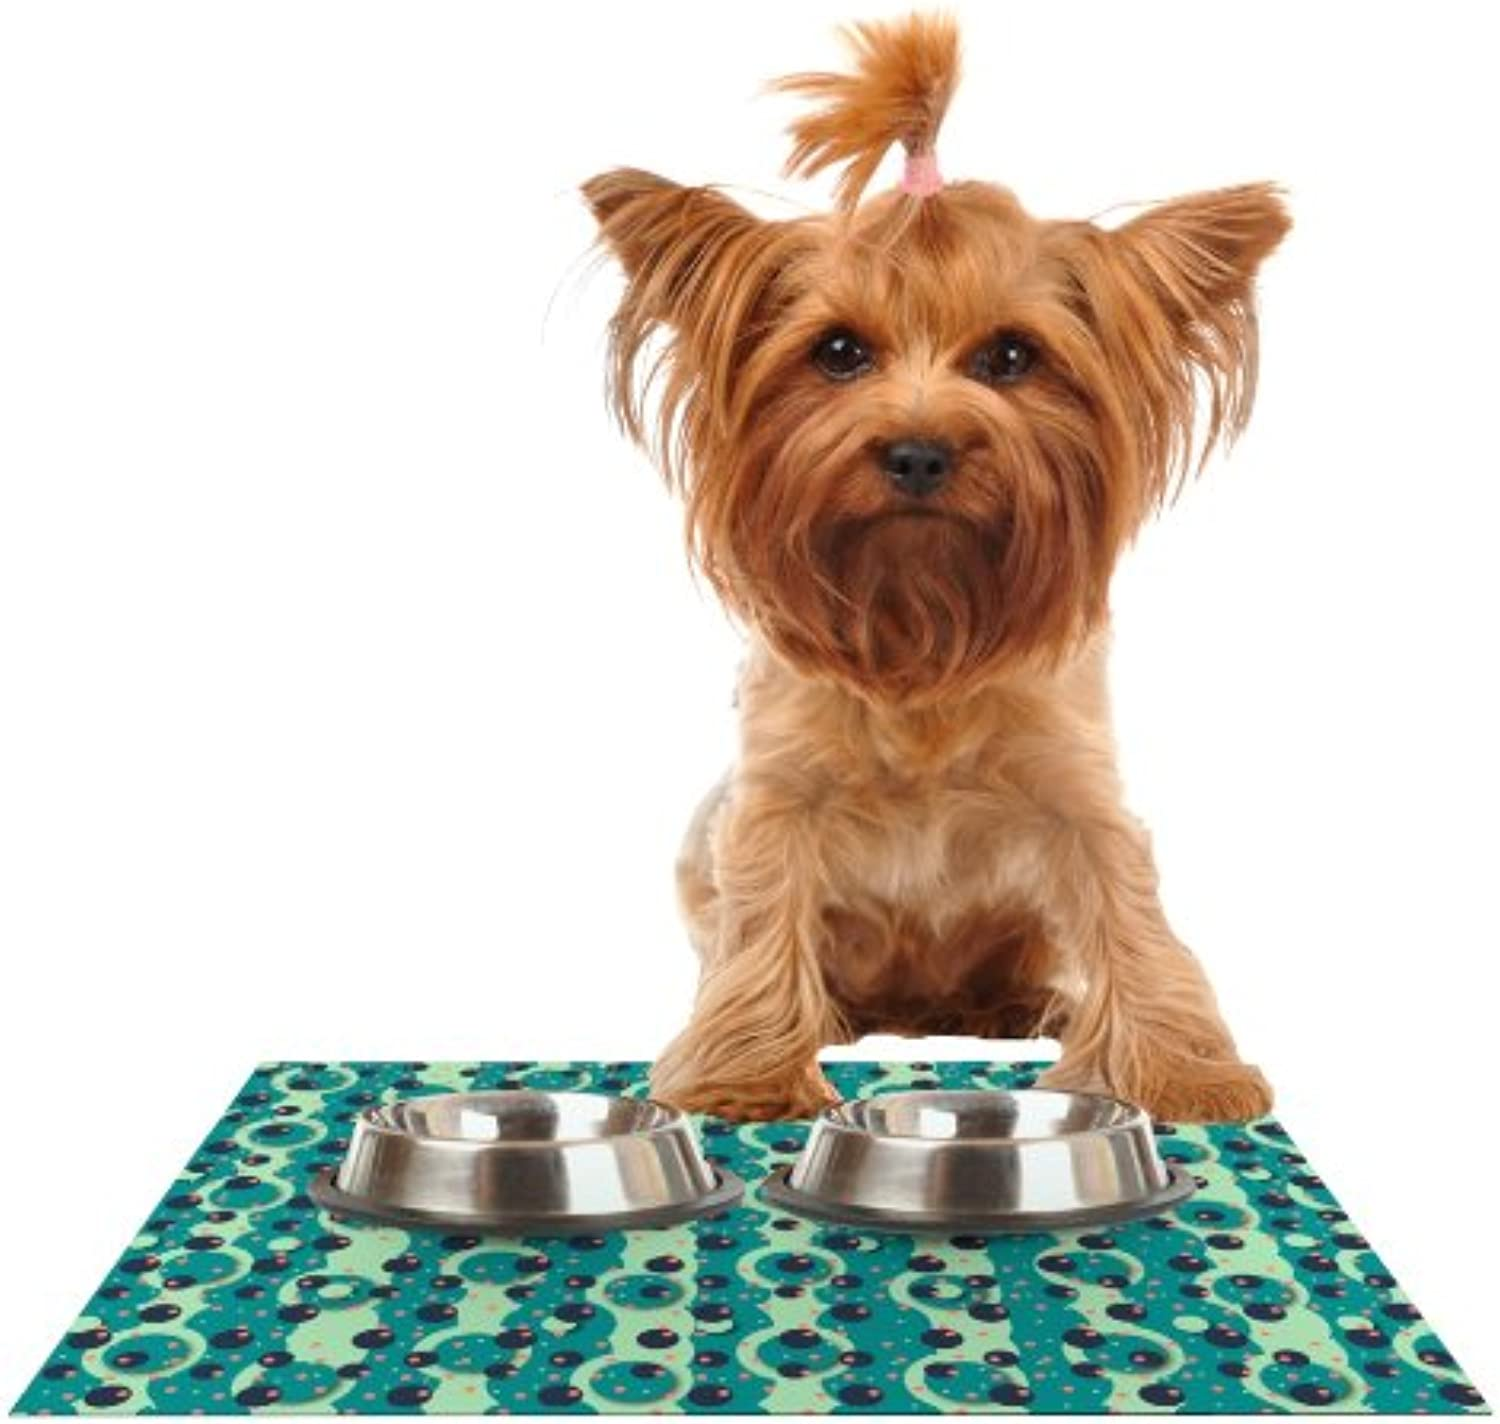 Kess InHouse Akwaflorell Bubbles Made of Paper  Feeding Mat for Pet Bowl, 18 by 13Inch